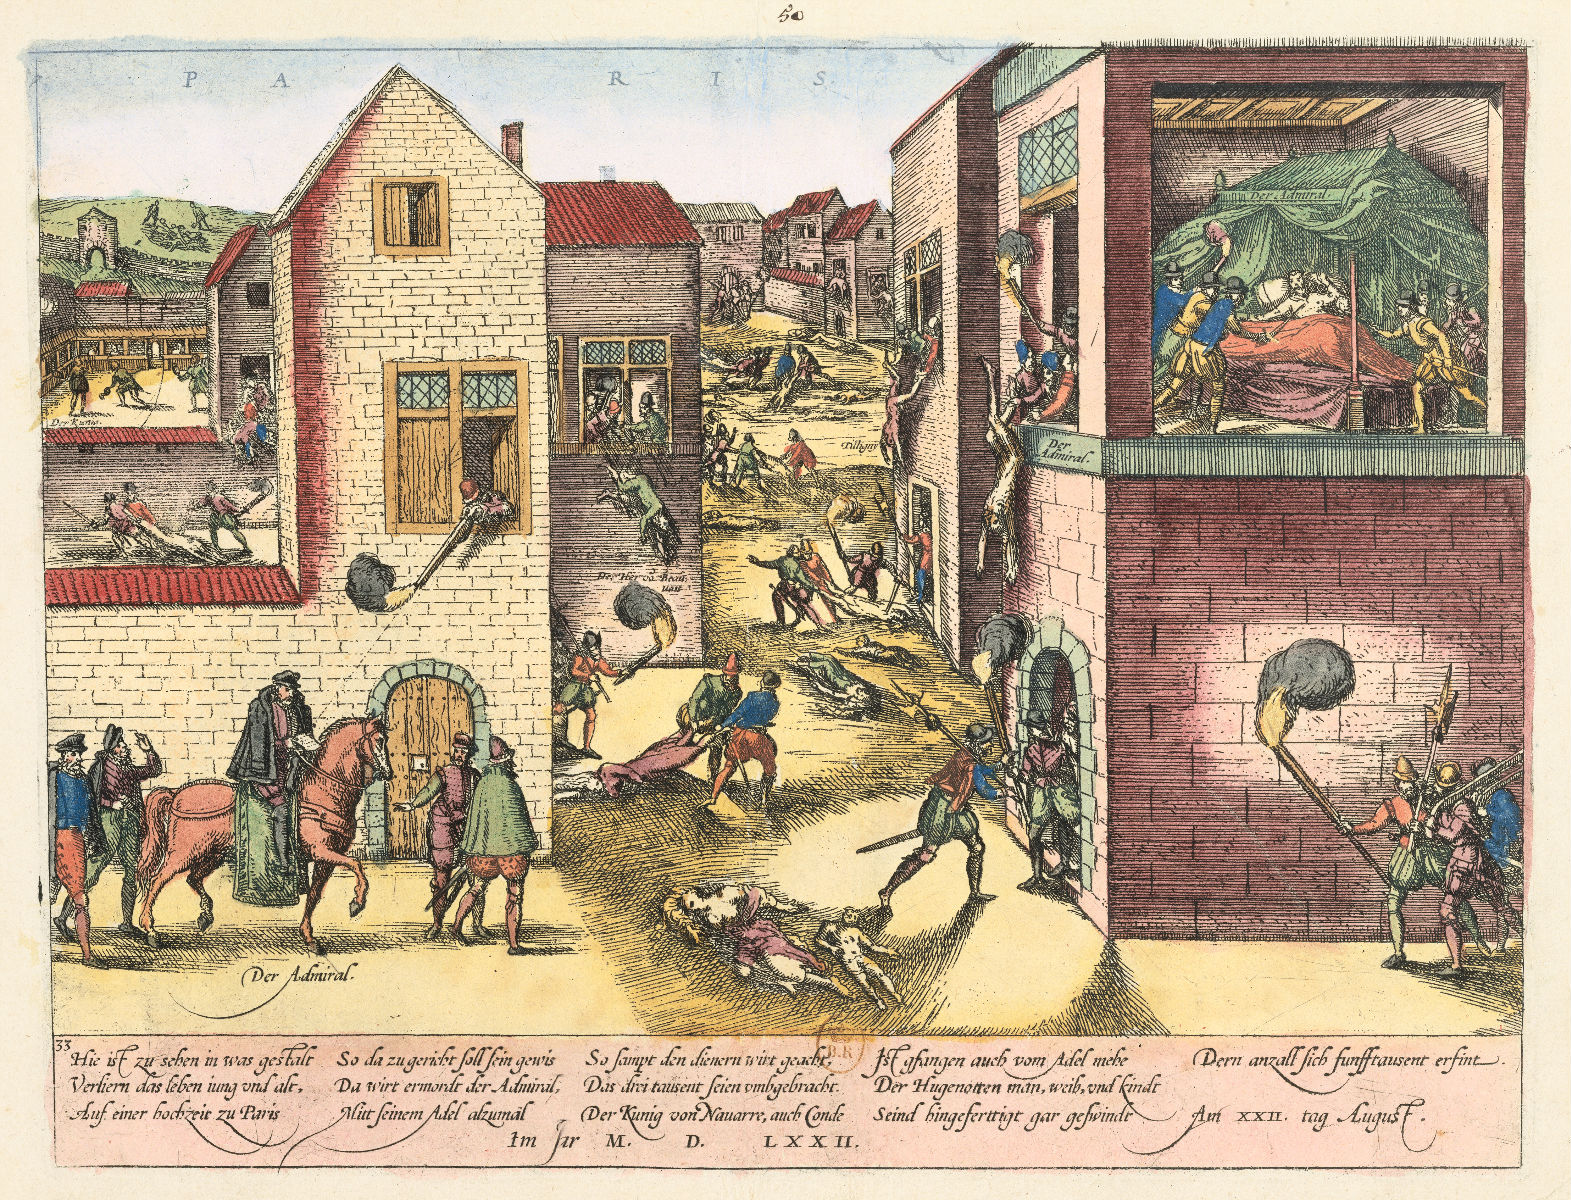 File:Assassinat de Coligny et massacre de la Saint-Barthélemy (1572).